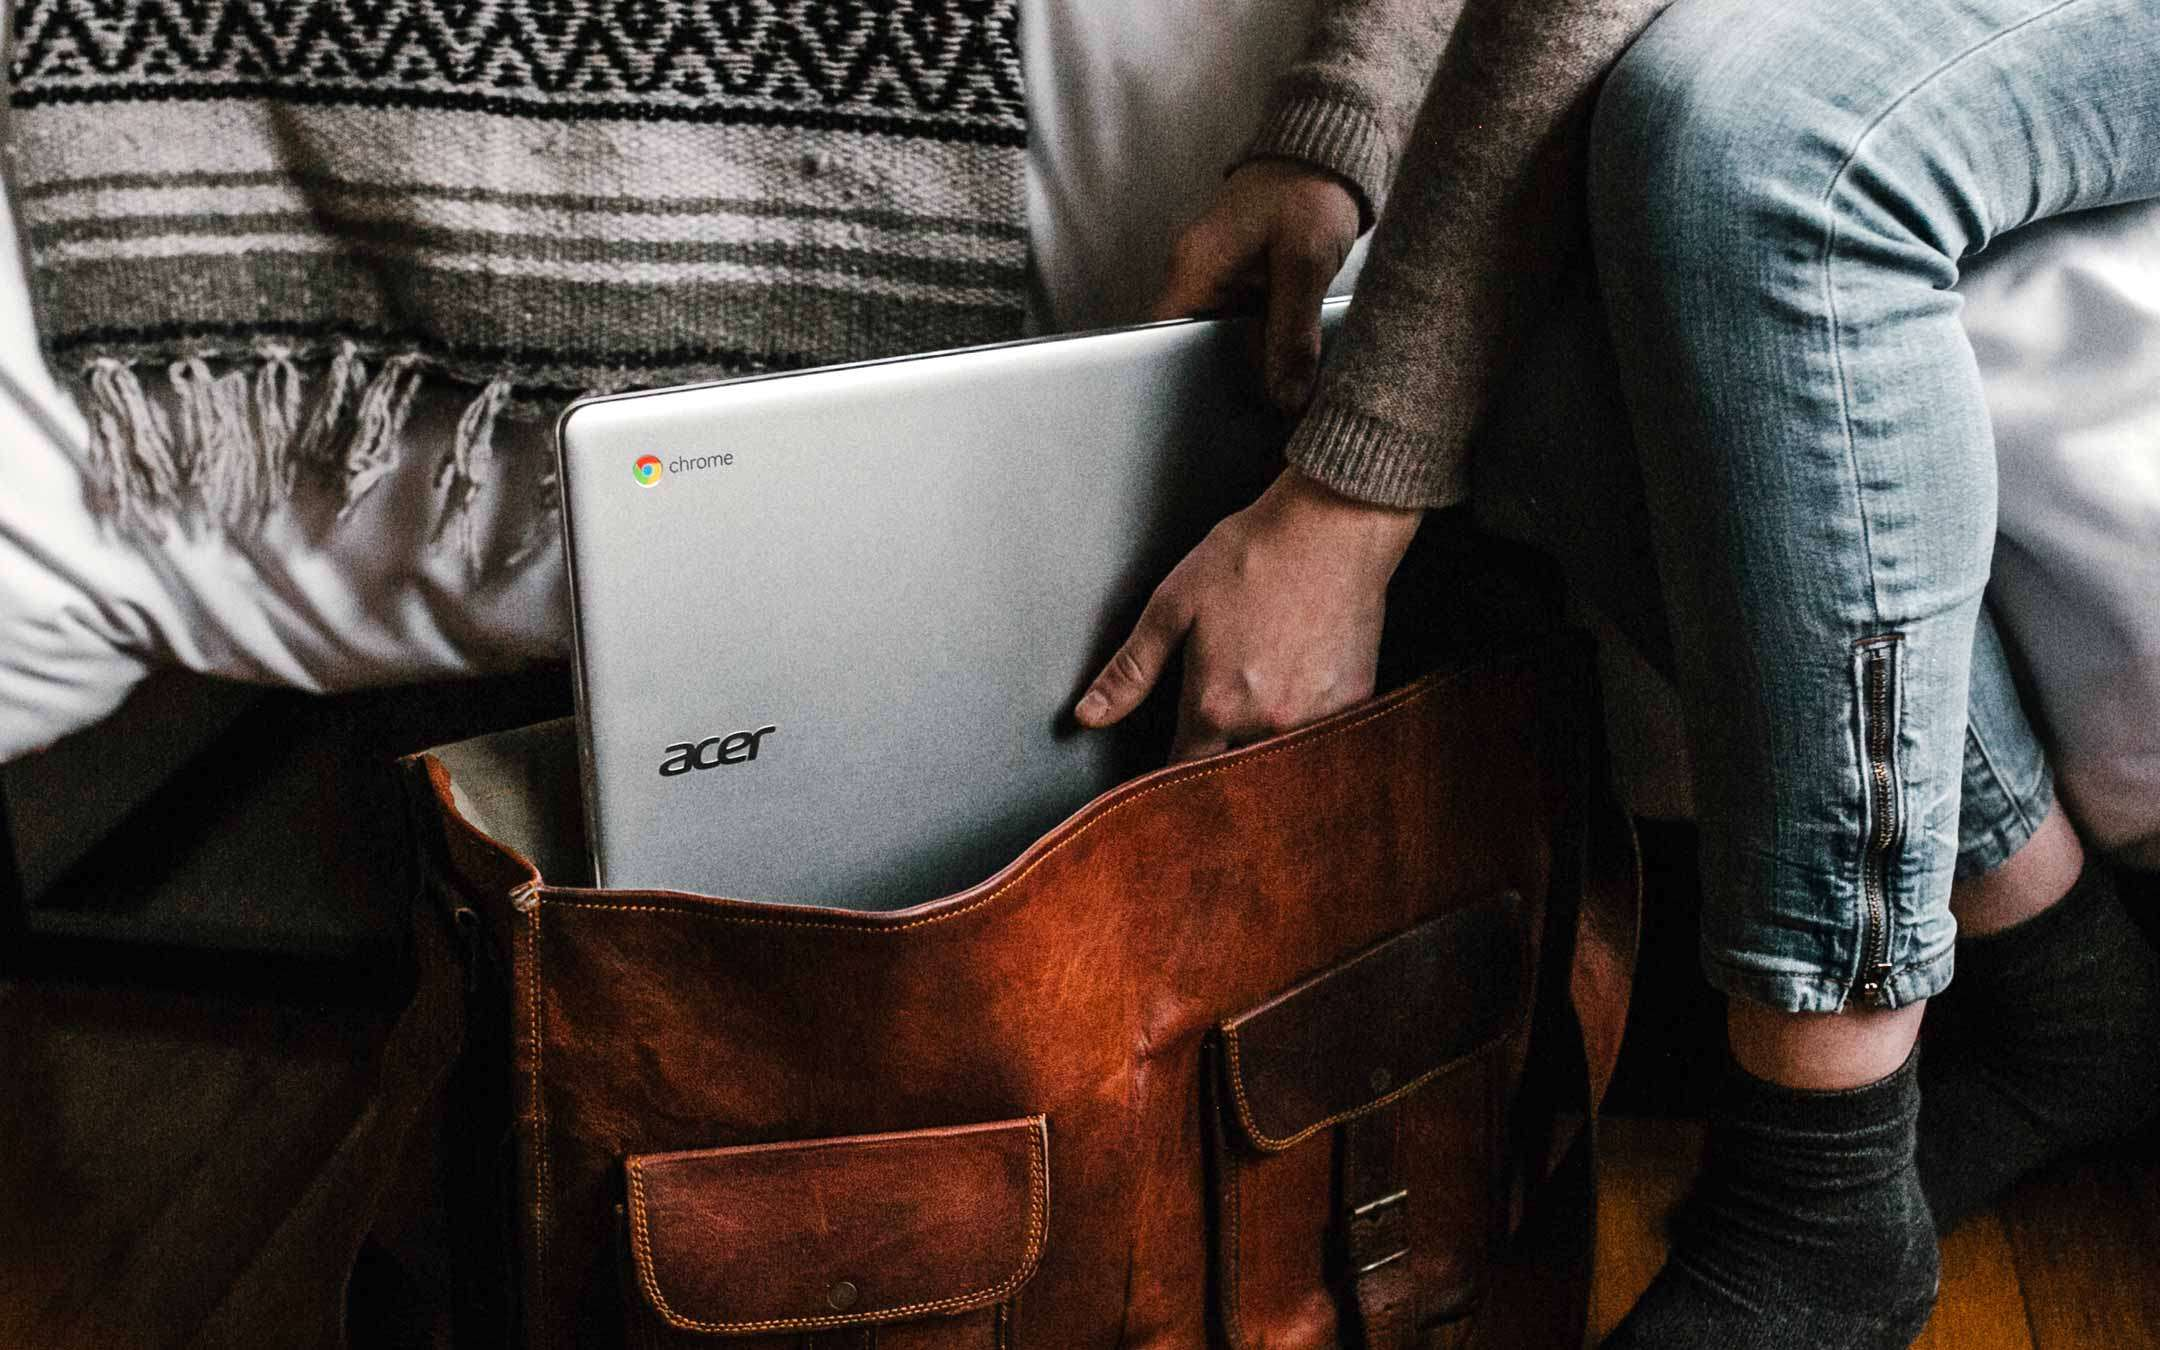 Chromebook nailed after the Chrome OS update?